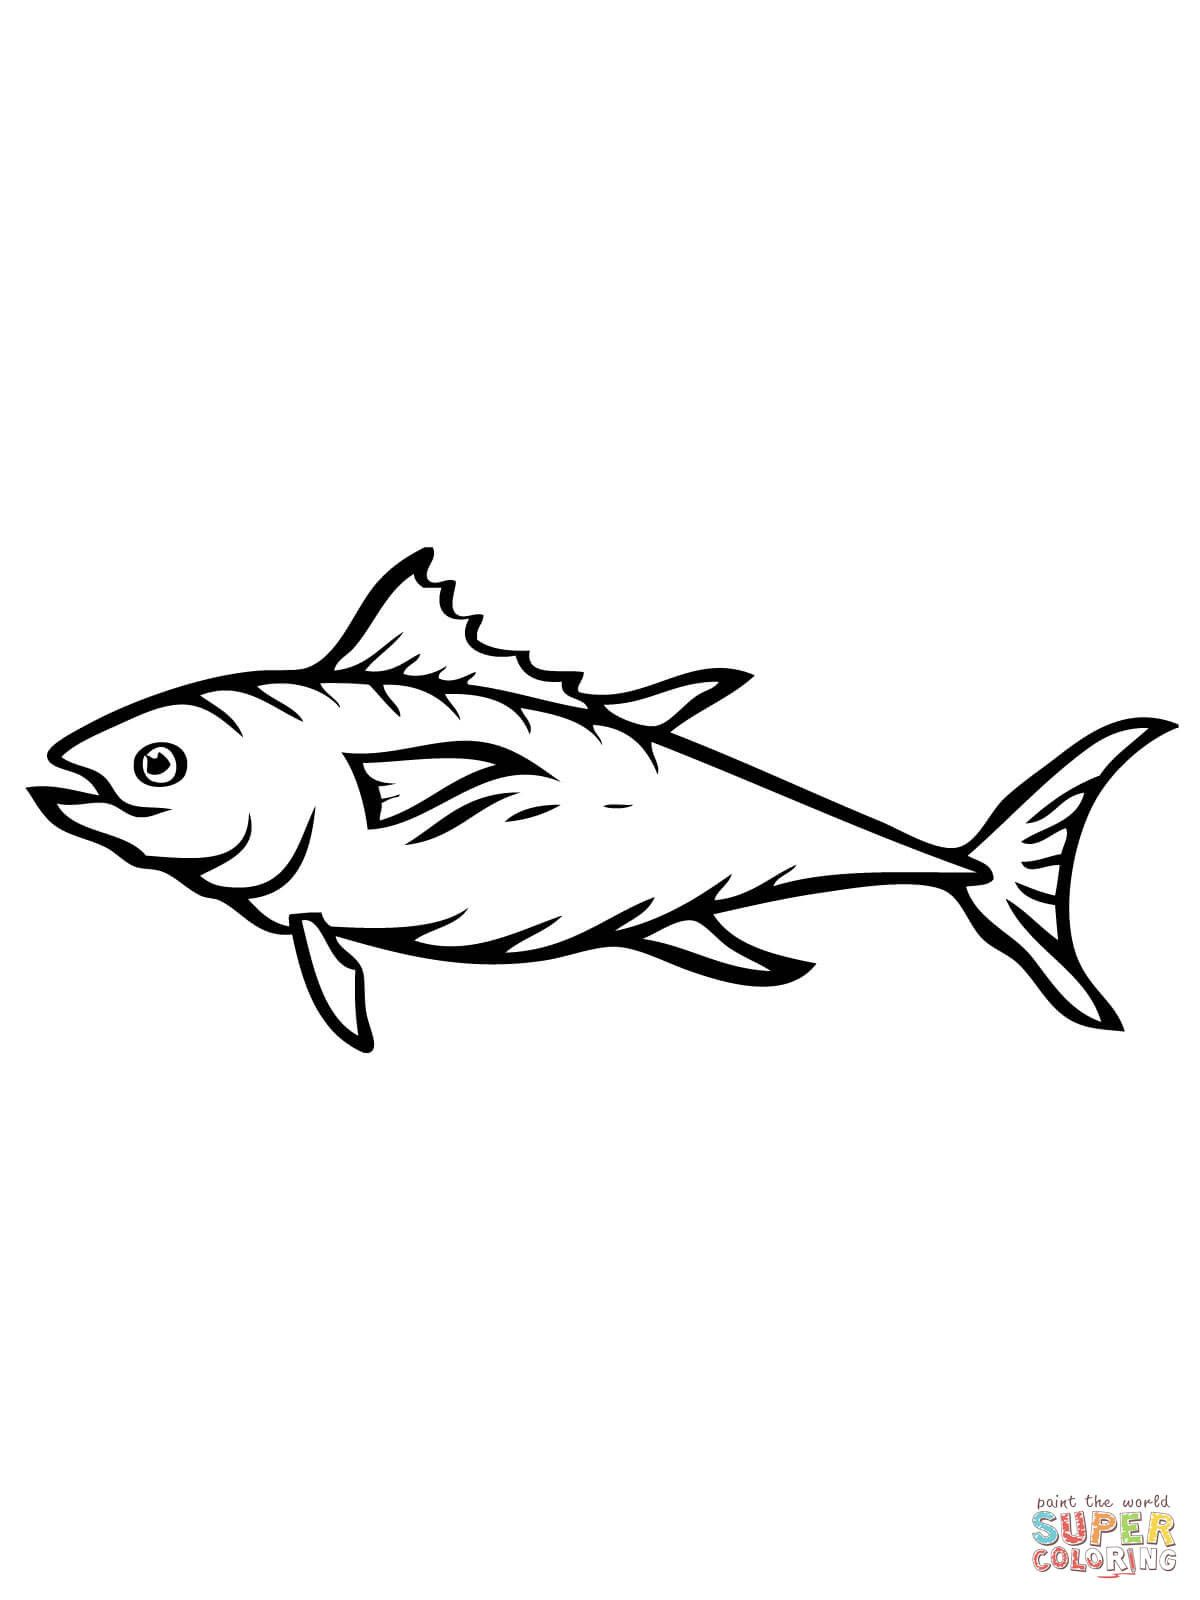 Tuna Fish Coloring Page Youngandtae Com Fish Coloring Page Mermaid Coloring Pages Easy Coloring Pages